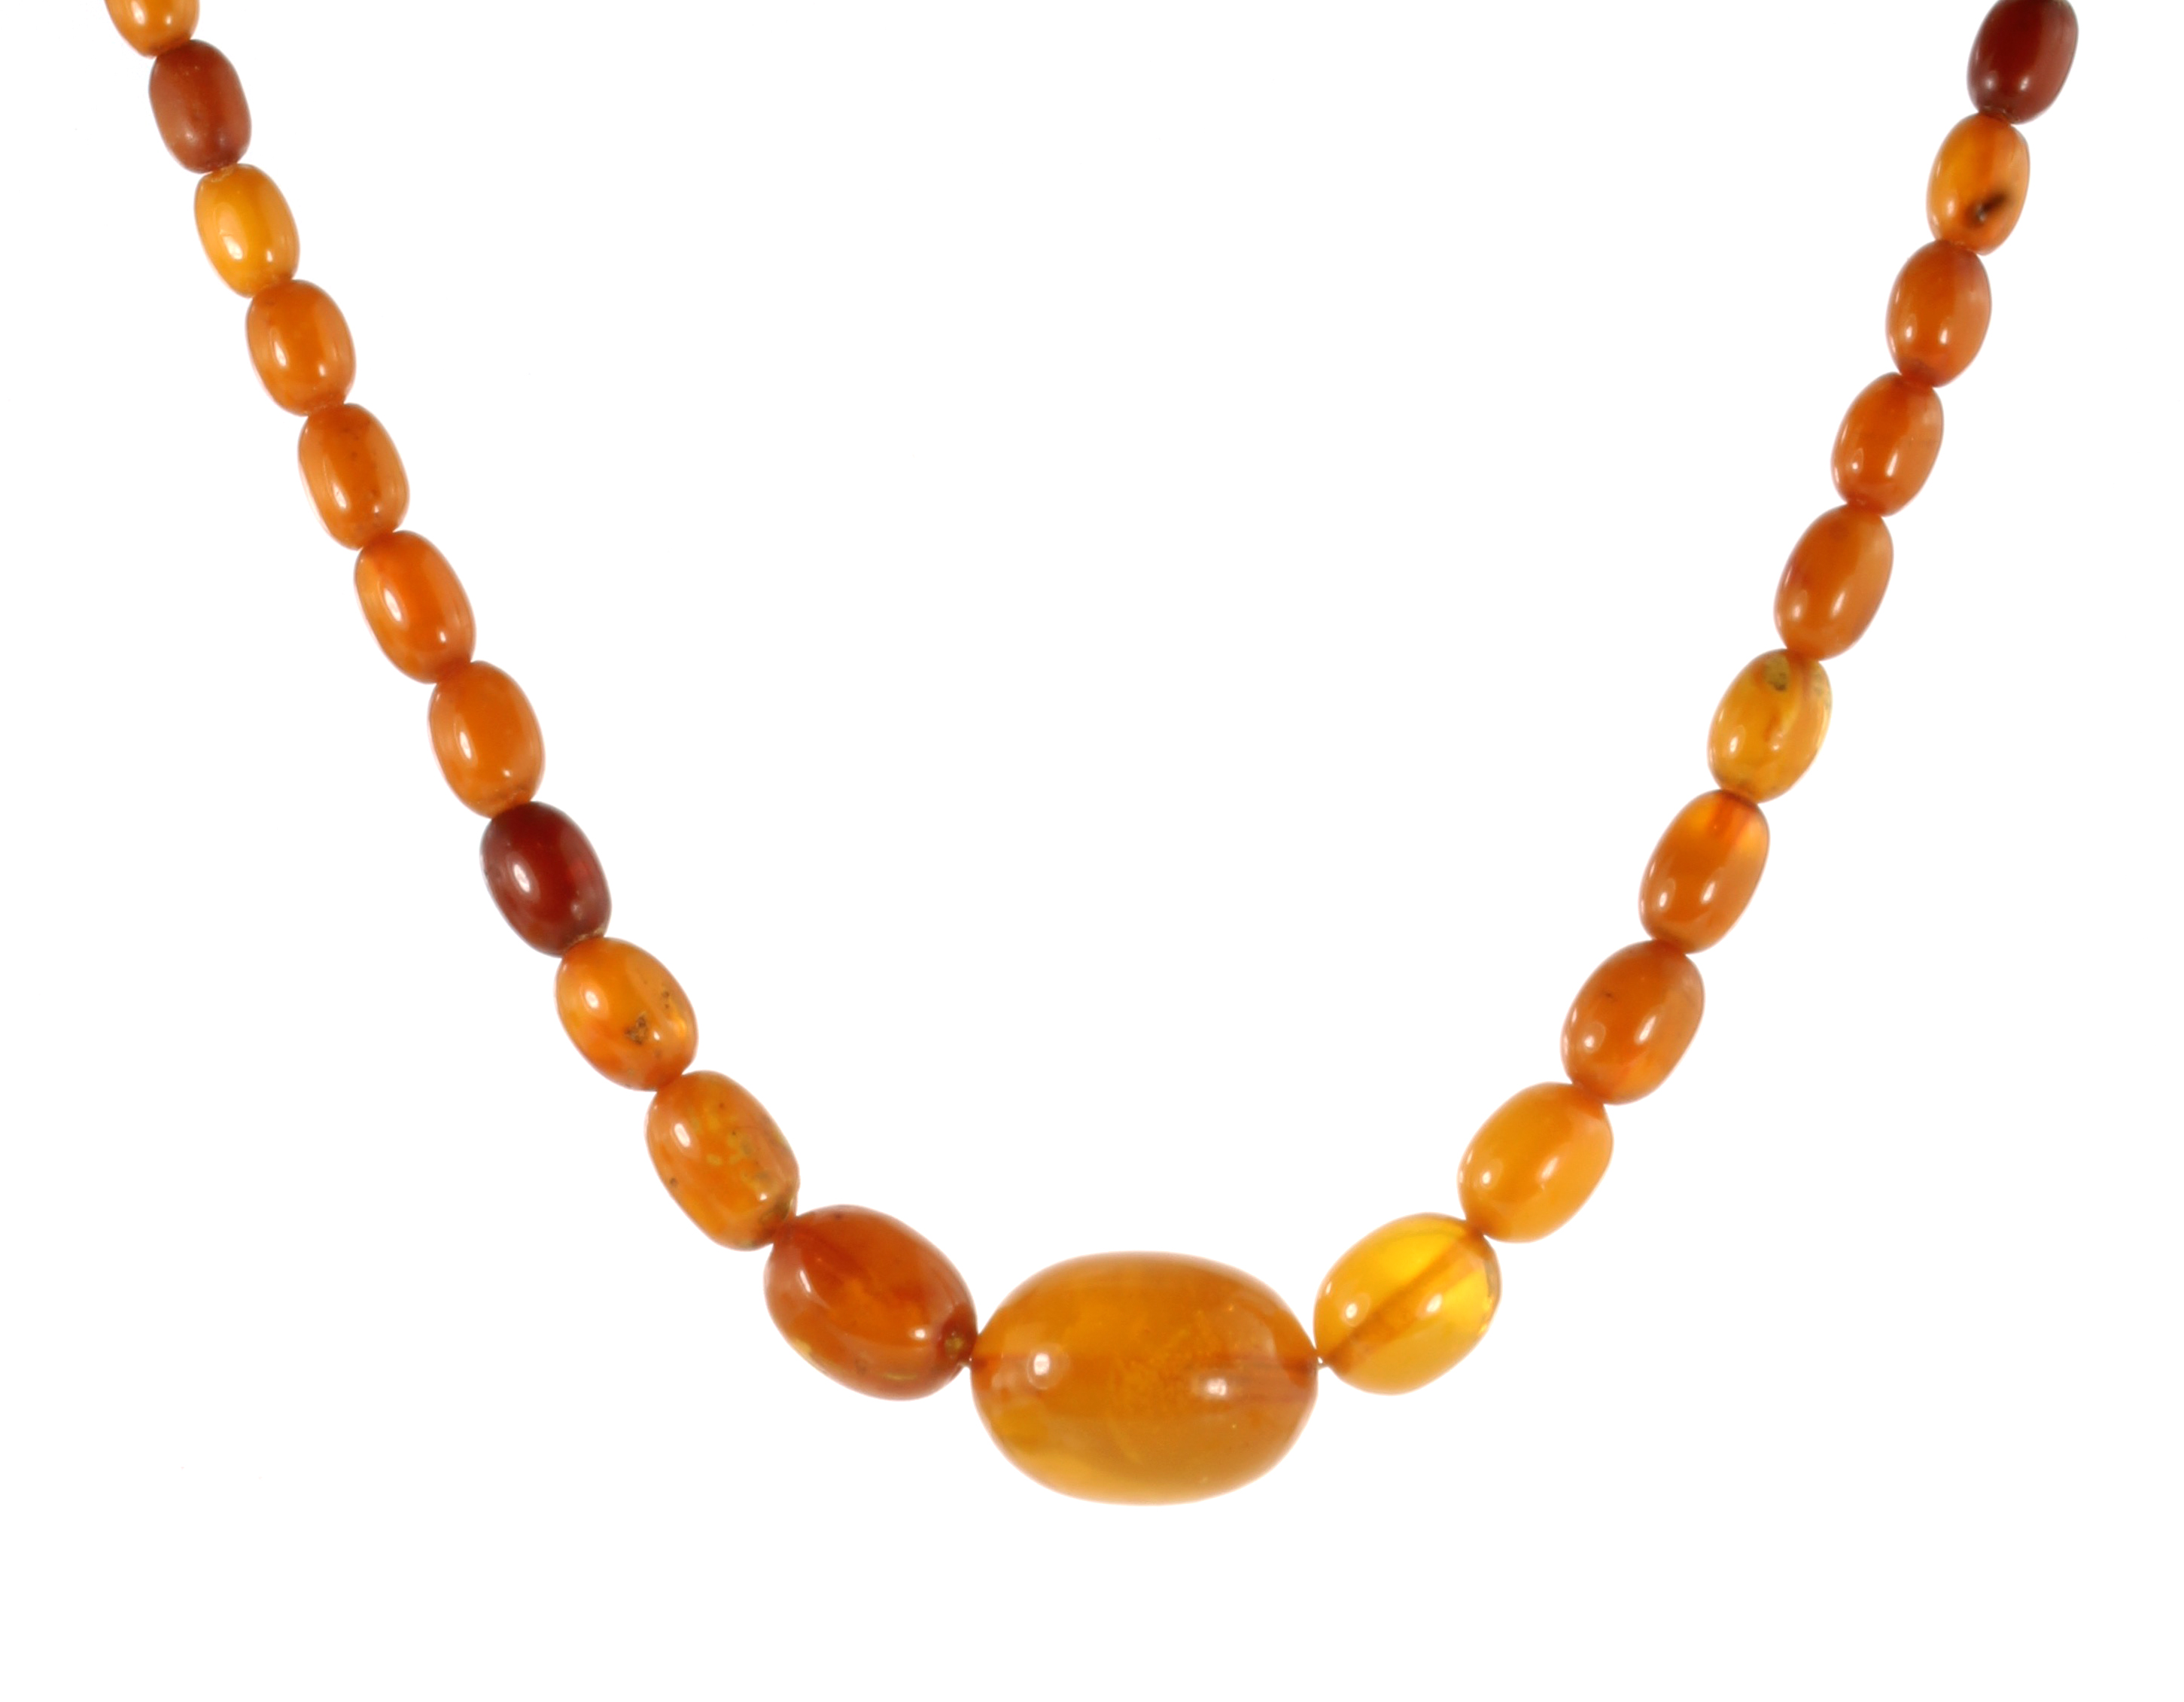 Los 11 - A NATURAL AMBER BEAD NECKLACE comprising a single row of forty-one graduated polished oval beads